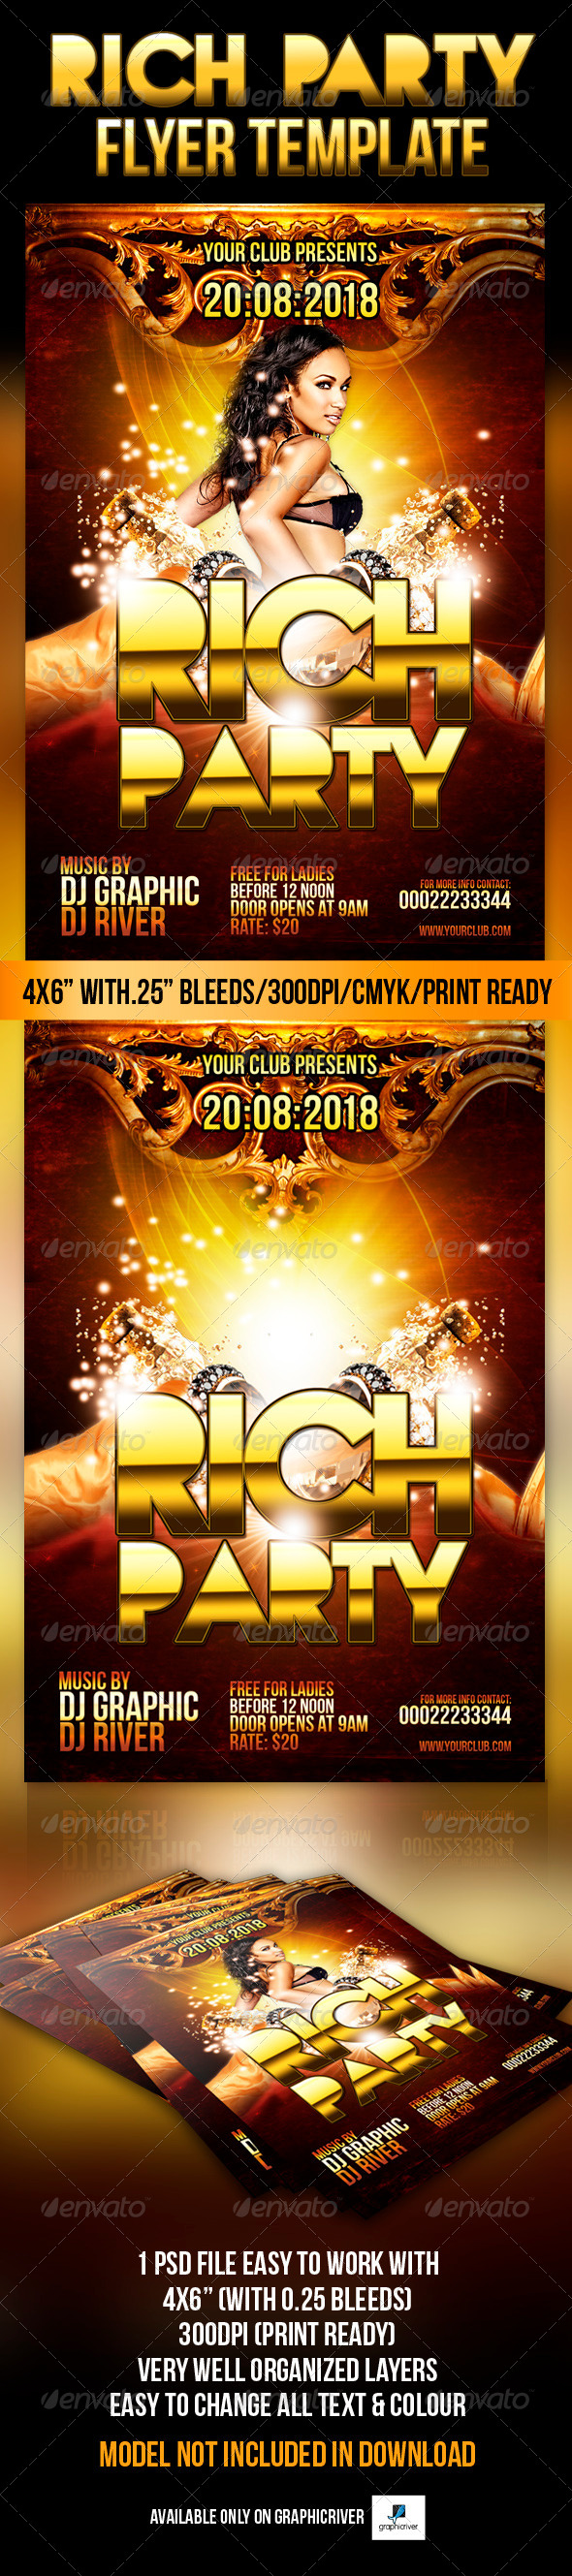 Rich Party Flyer Template - Flyers Print Templates